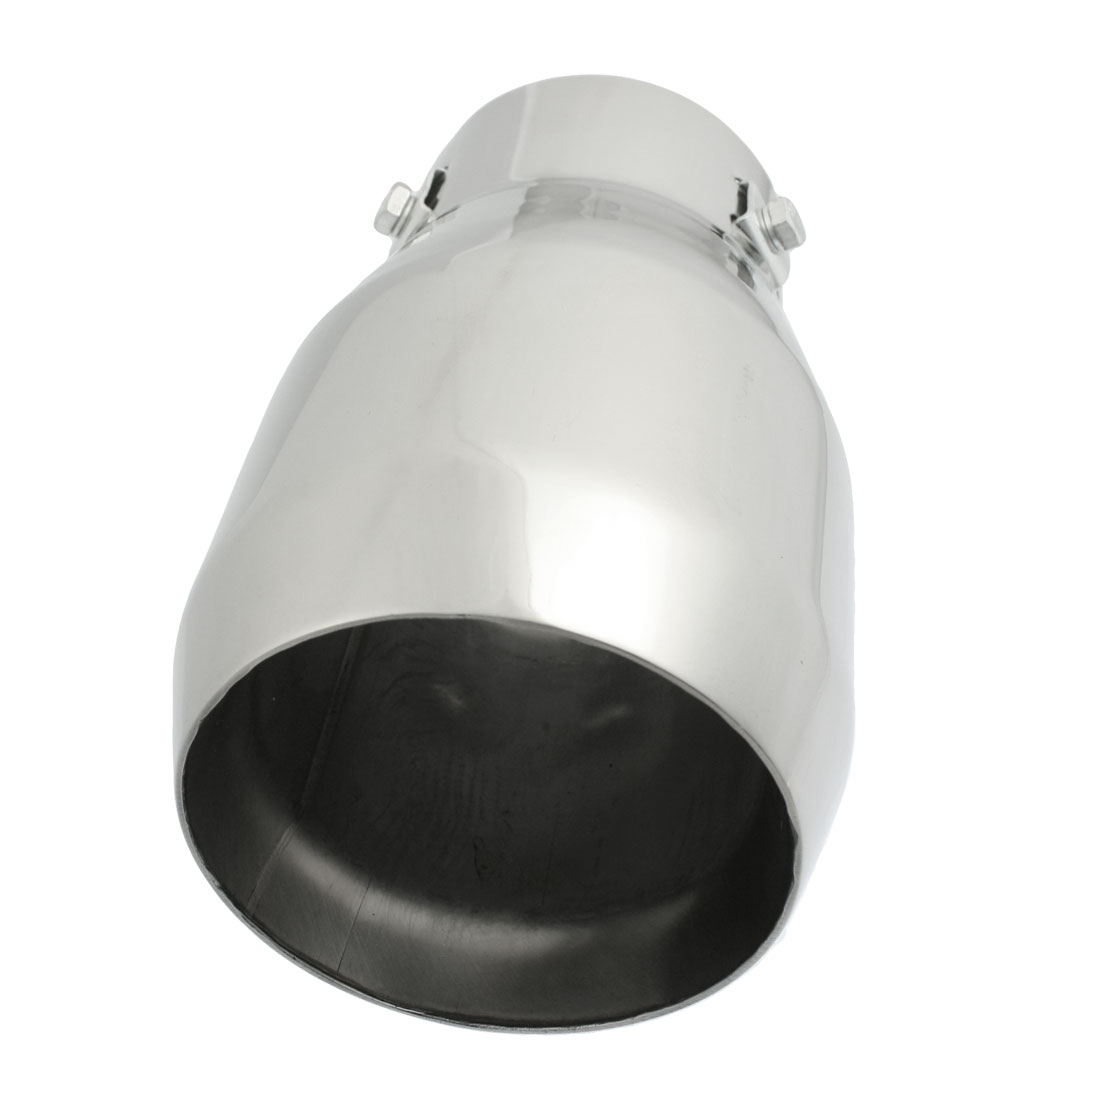 """Silver Tone 2.9"""" Dia Inlet Exhaust Pipe Silencer Tail Muffler Tip"""